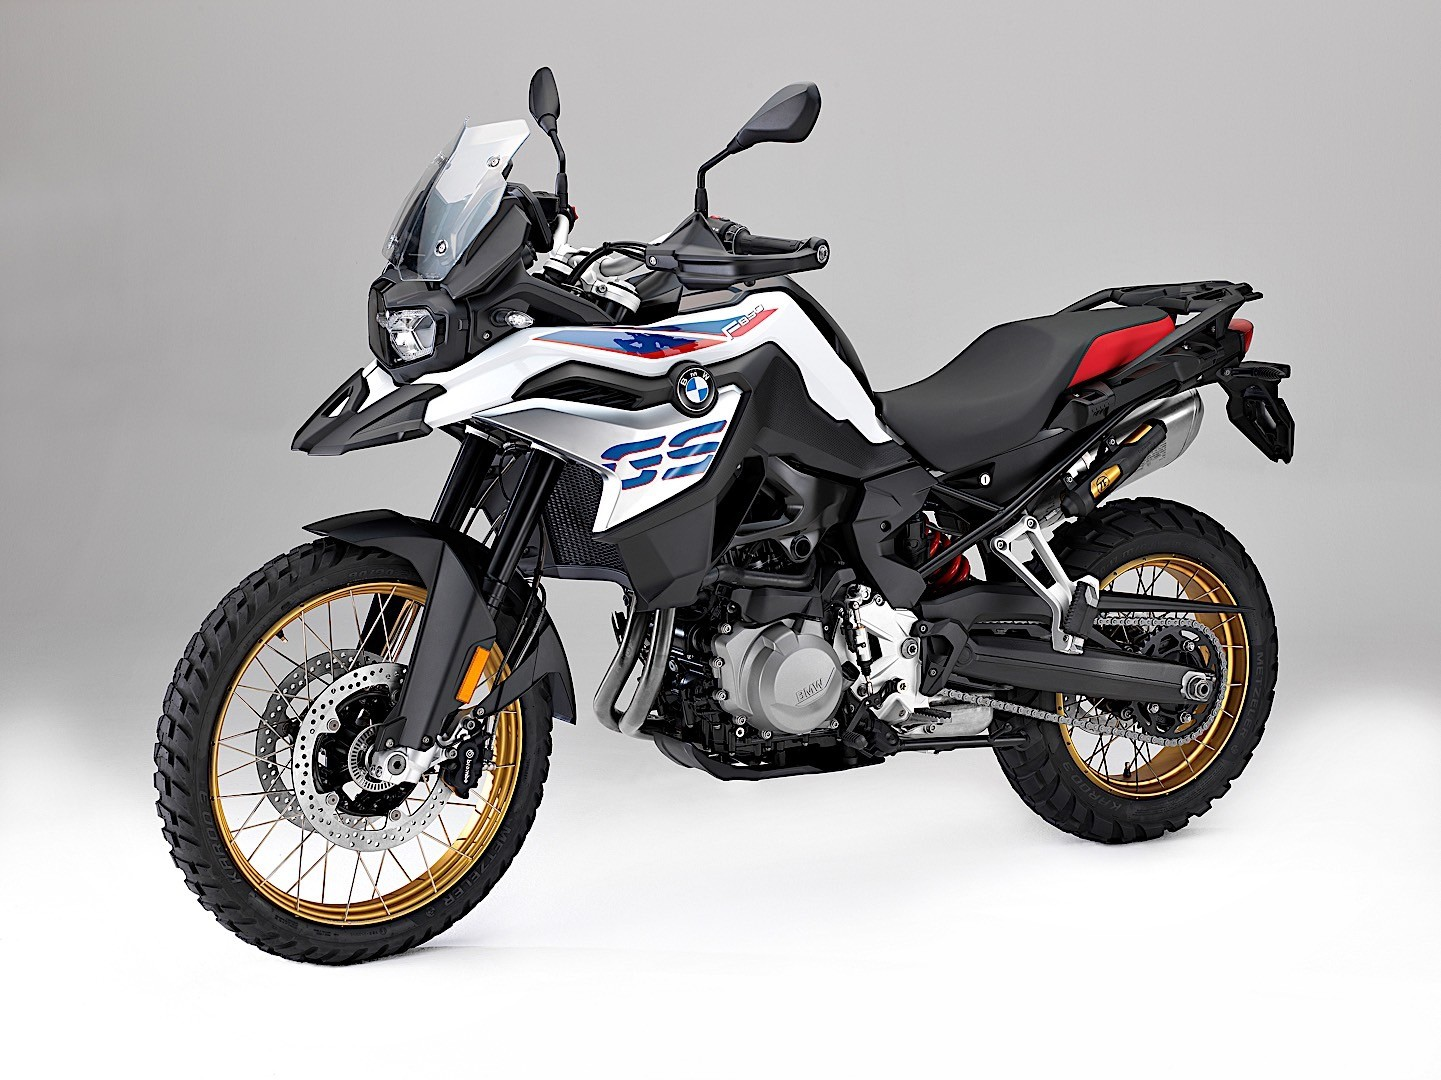 redesigned 2018 bmw f 750 gs and f 850 gs pop out at eicma. Black Bedroom Furniture Sets. Home Design Ideas